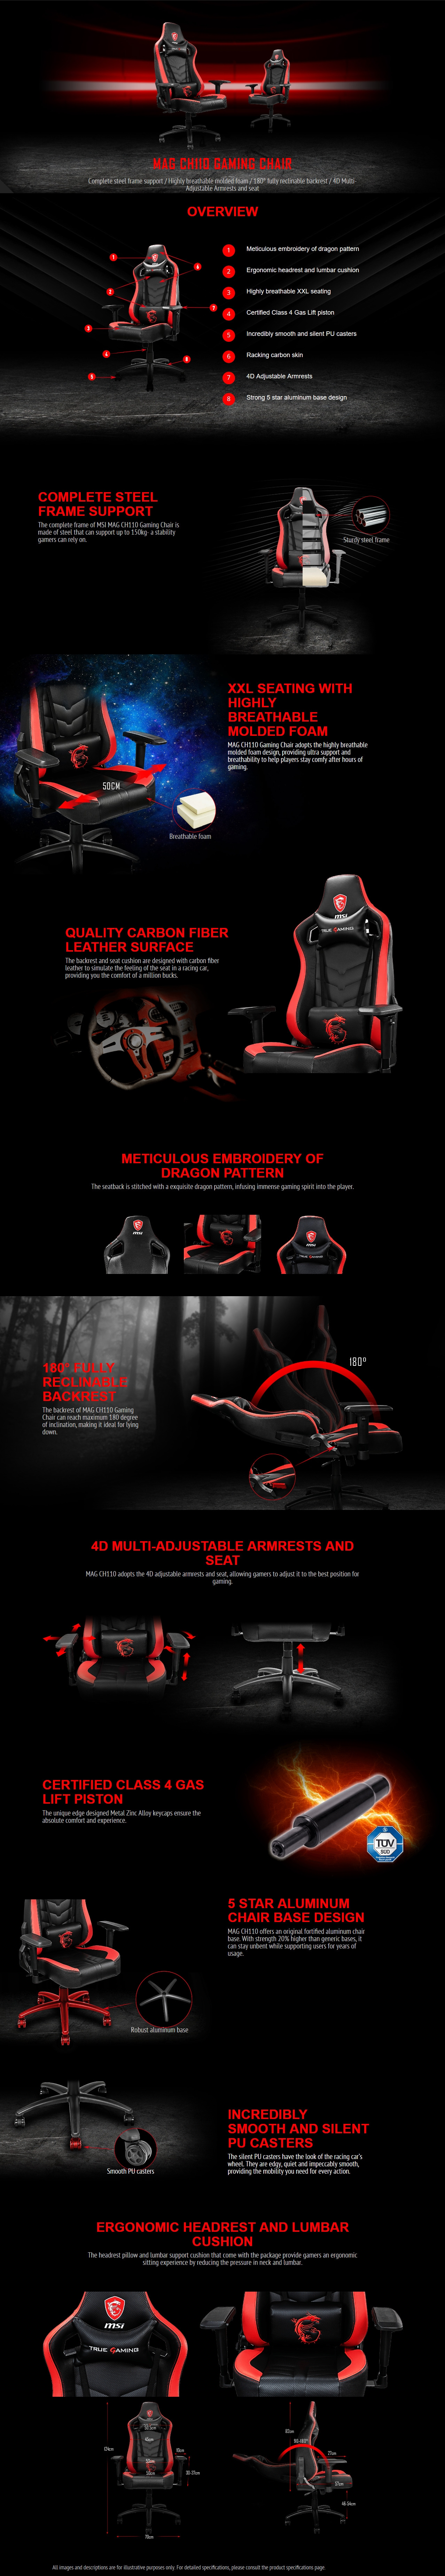 A large marketing image providing additional information about the product MSI MAG CH110 Black/Red Gaming Chair - Additional alt info not provided